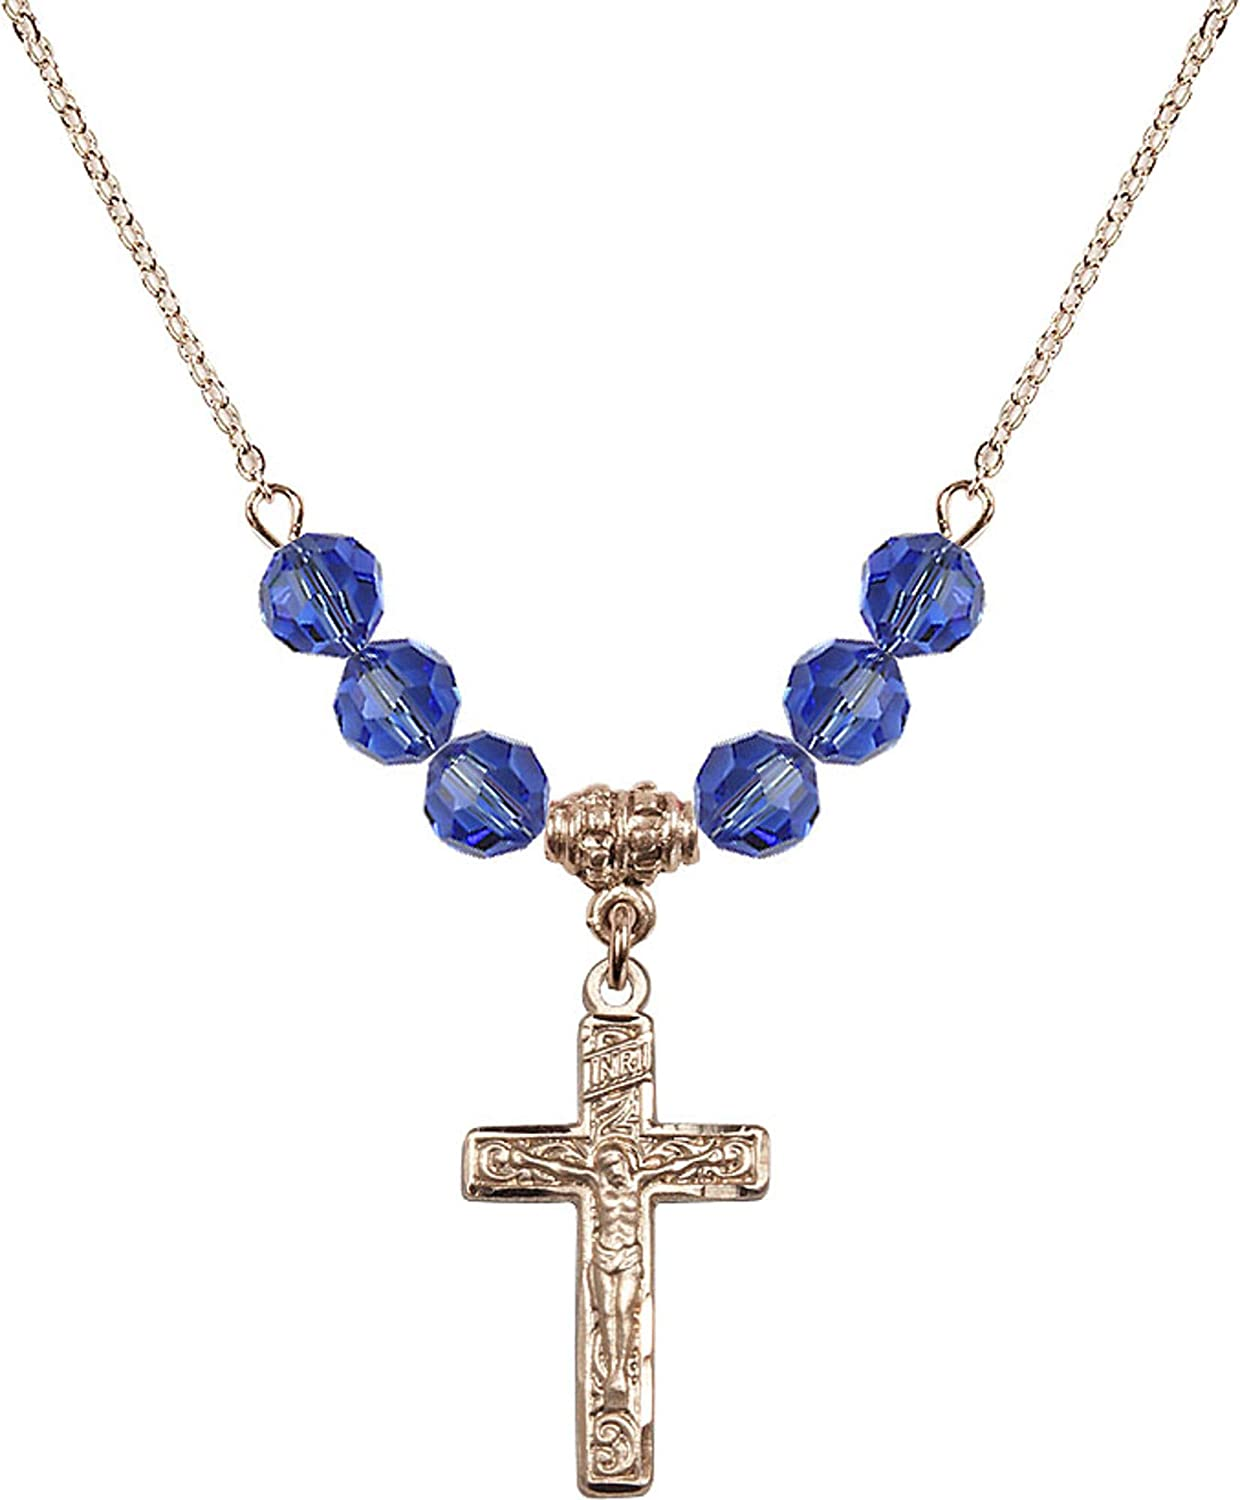 Bonyak Jewelry 18 Inch Hamilton Gold Plated Necklace w// 6mm Blue September Birth Month Stone Beads and Crucifix Charm